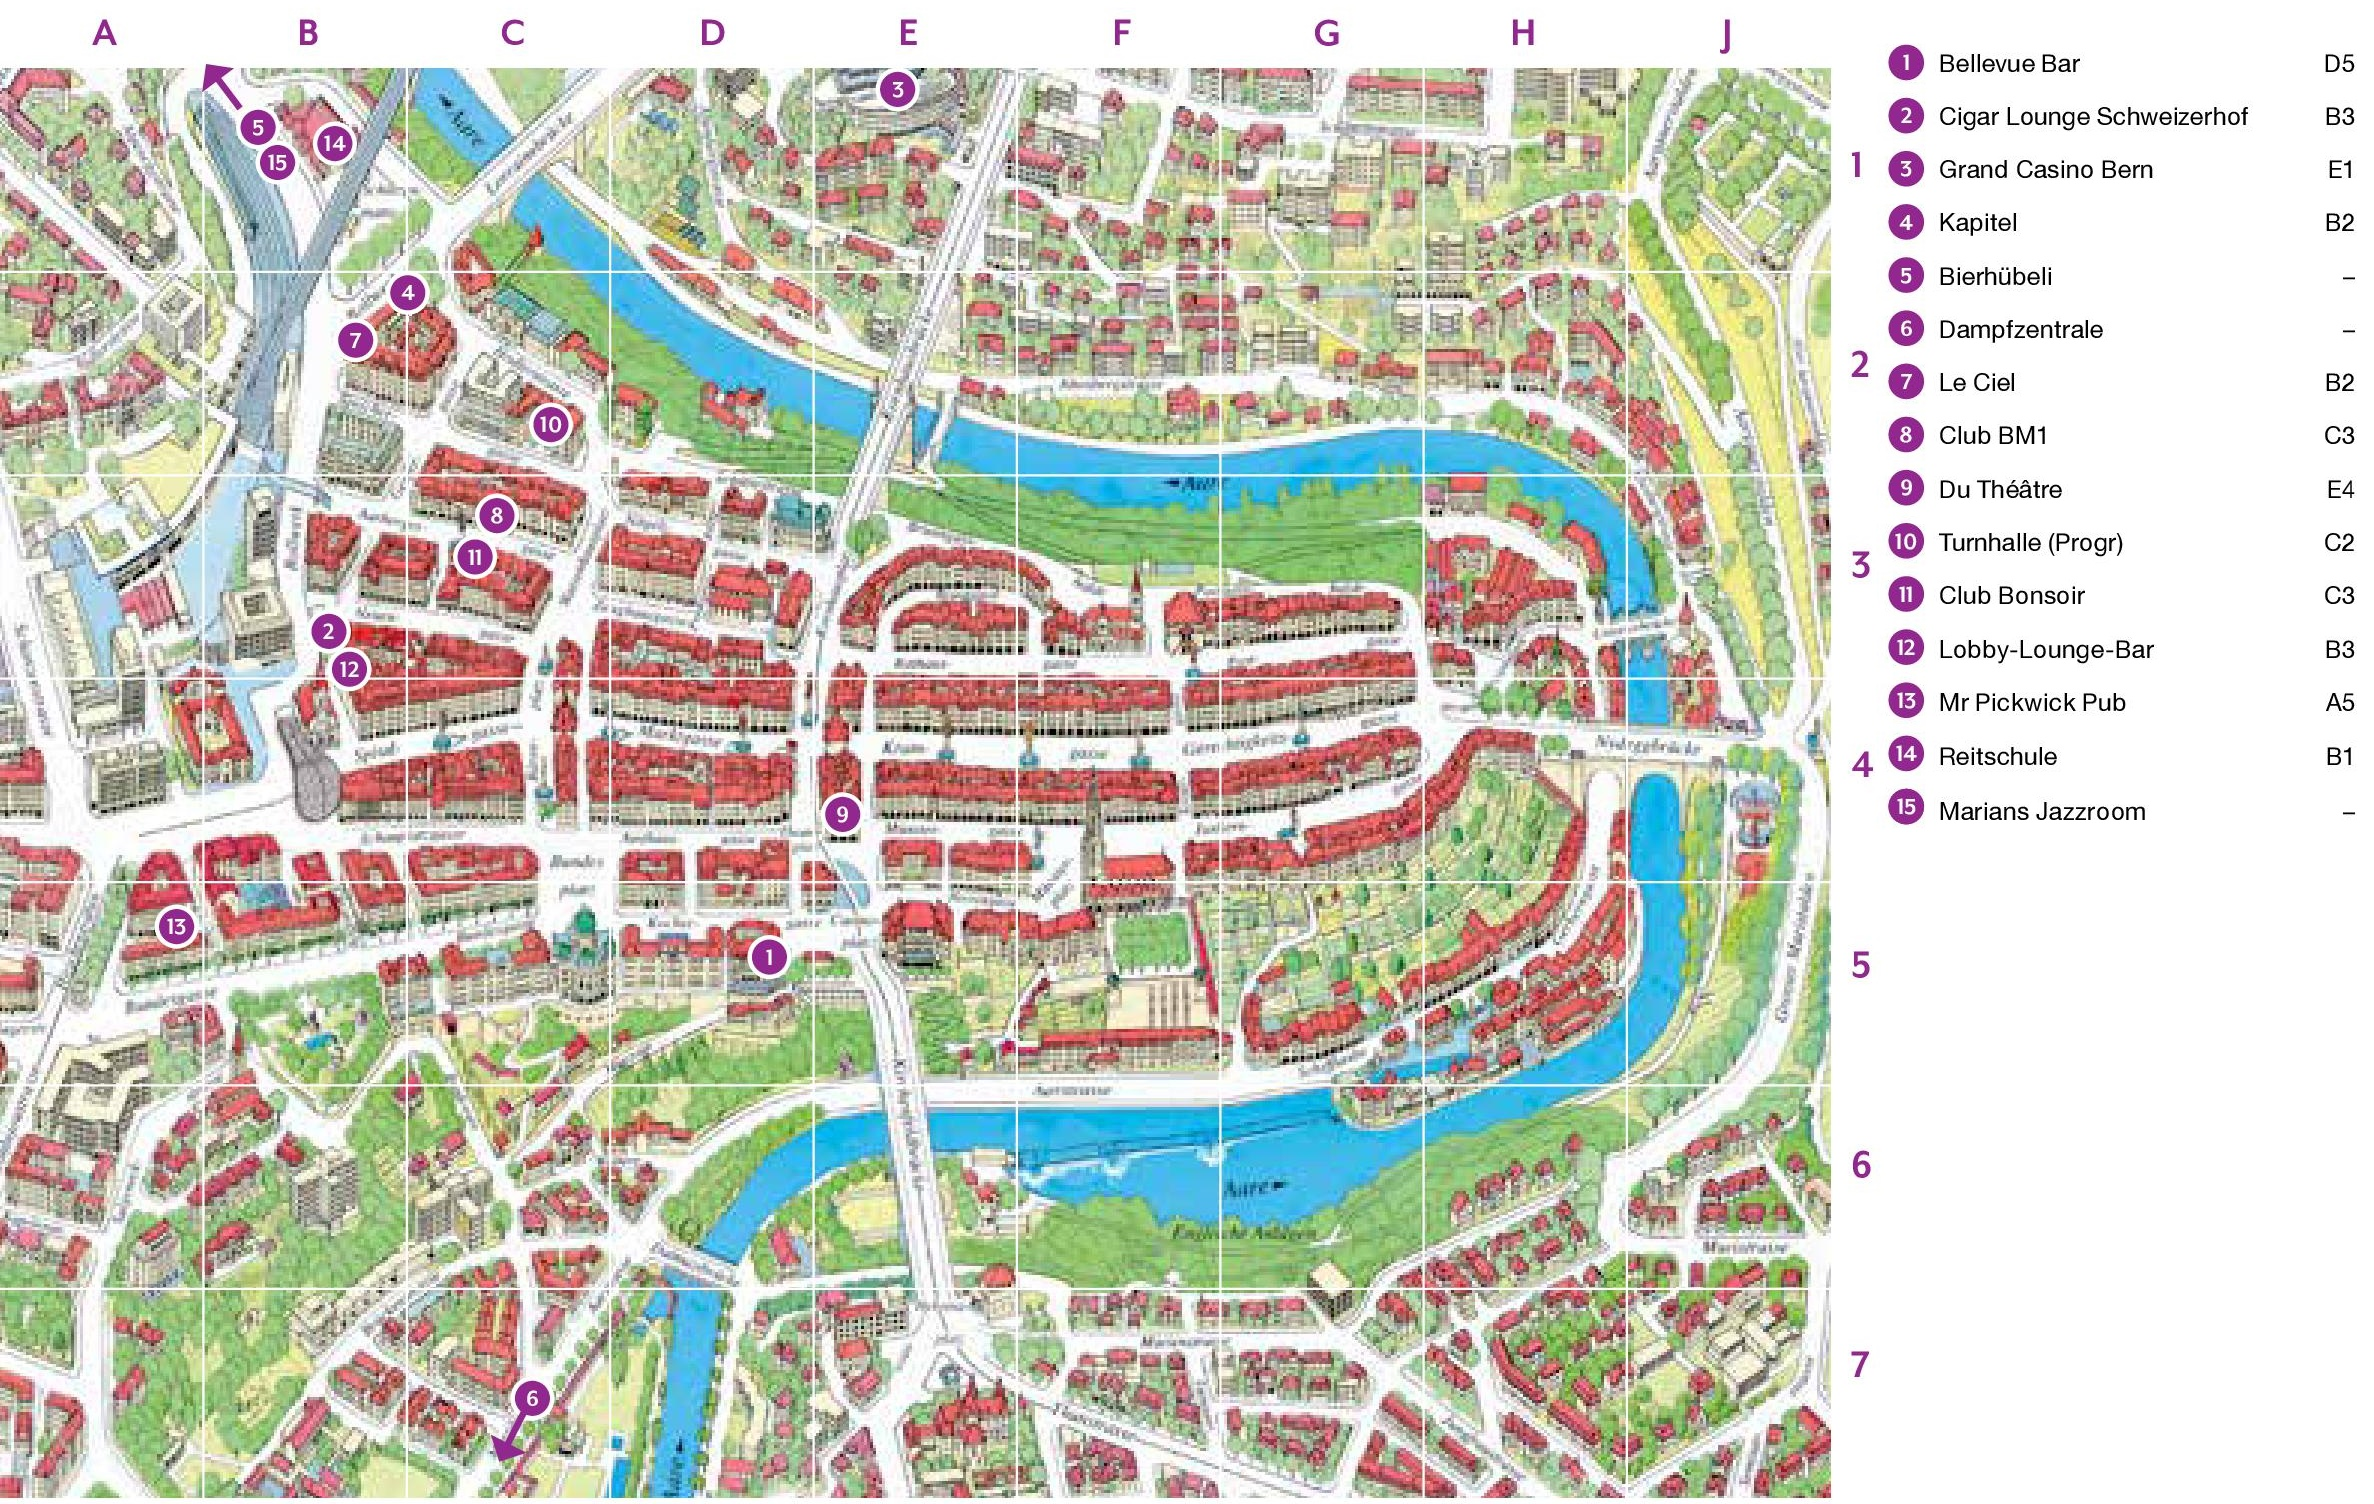 Bern city Maps | Switzerland | Maps of Bern (Berne)